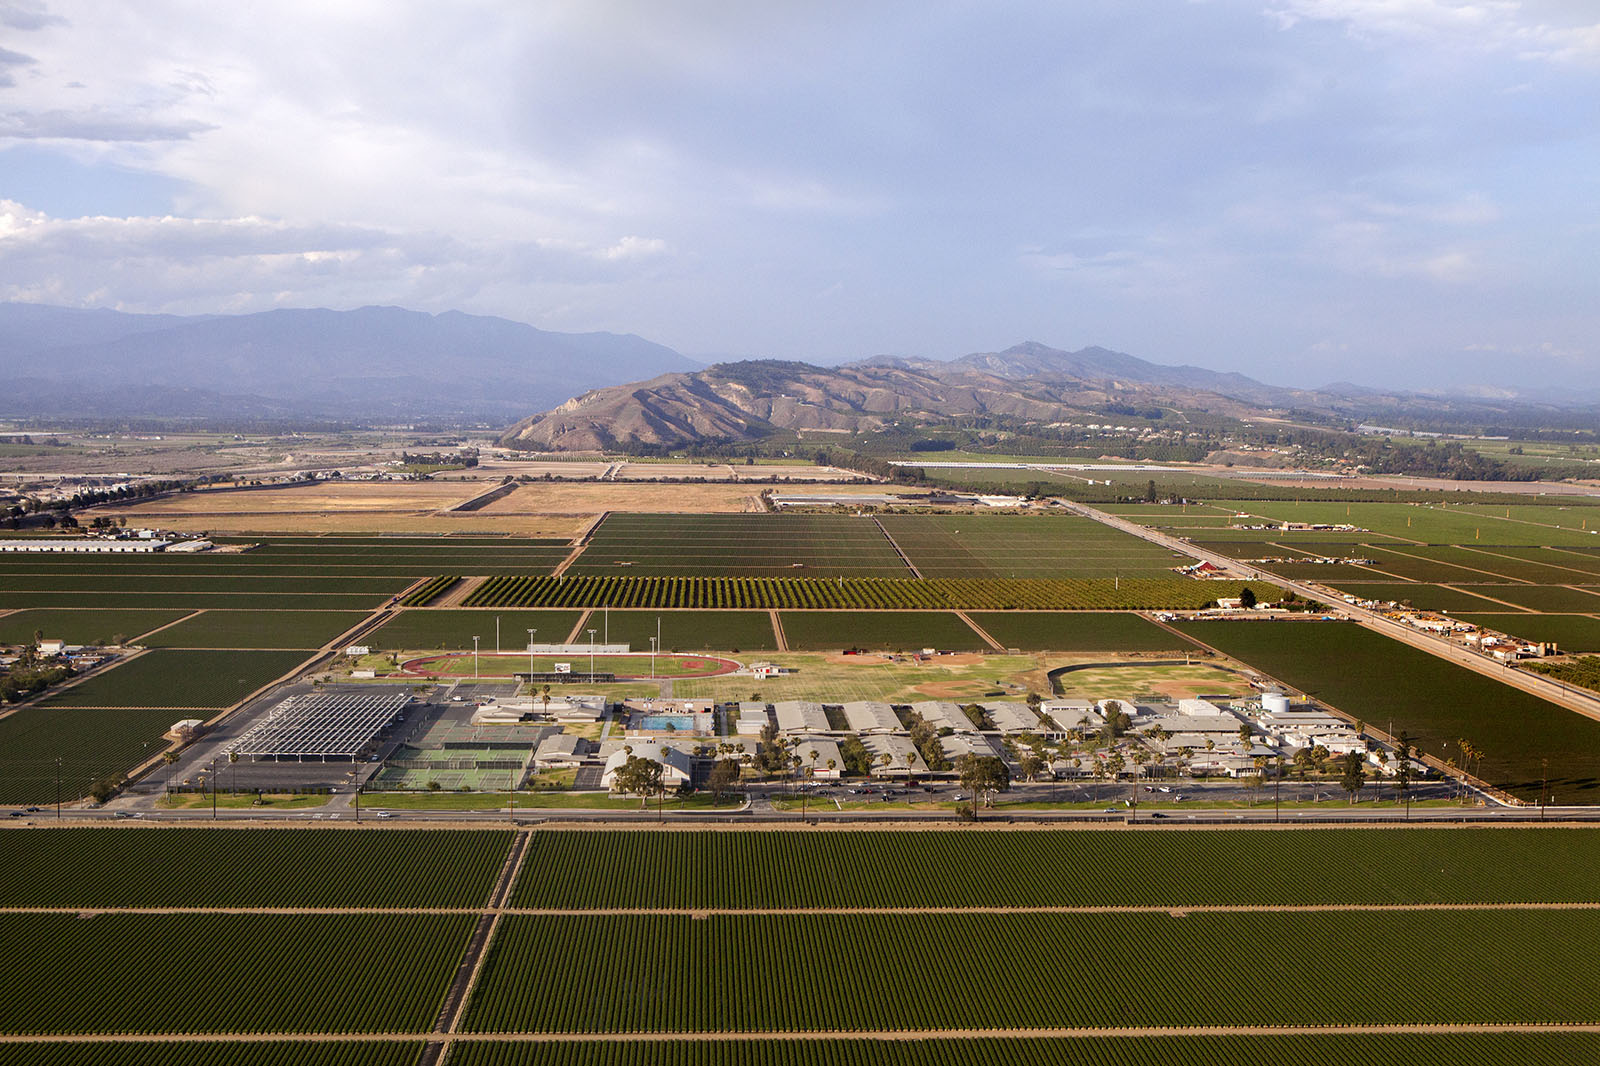 Rio Mesa High School in Oxnard, Calif., is surrounded by strawberry fields on all four sides. Photo: Sam Hodgson for CIR and used here with permission.